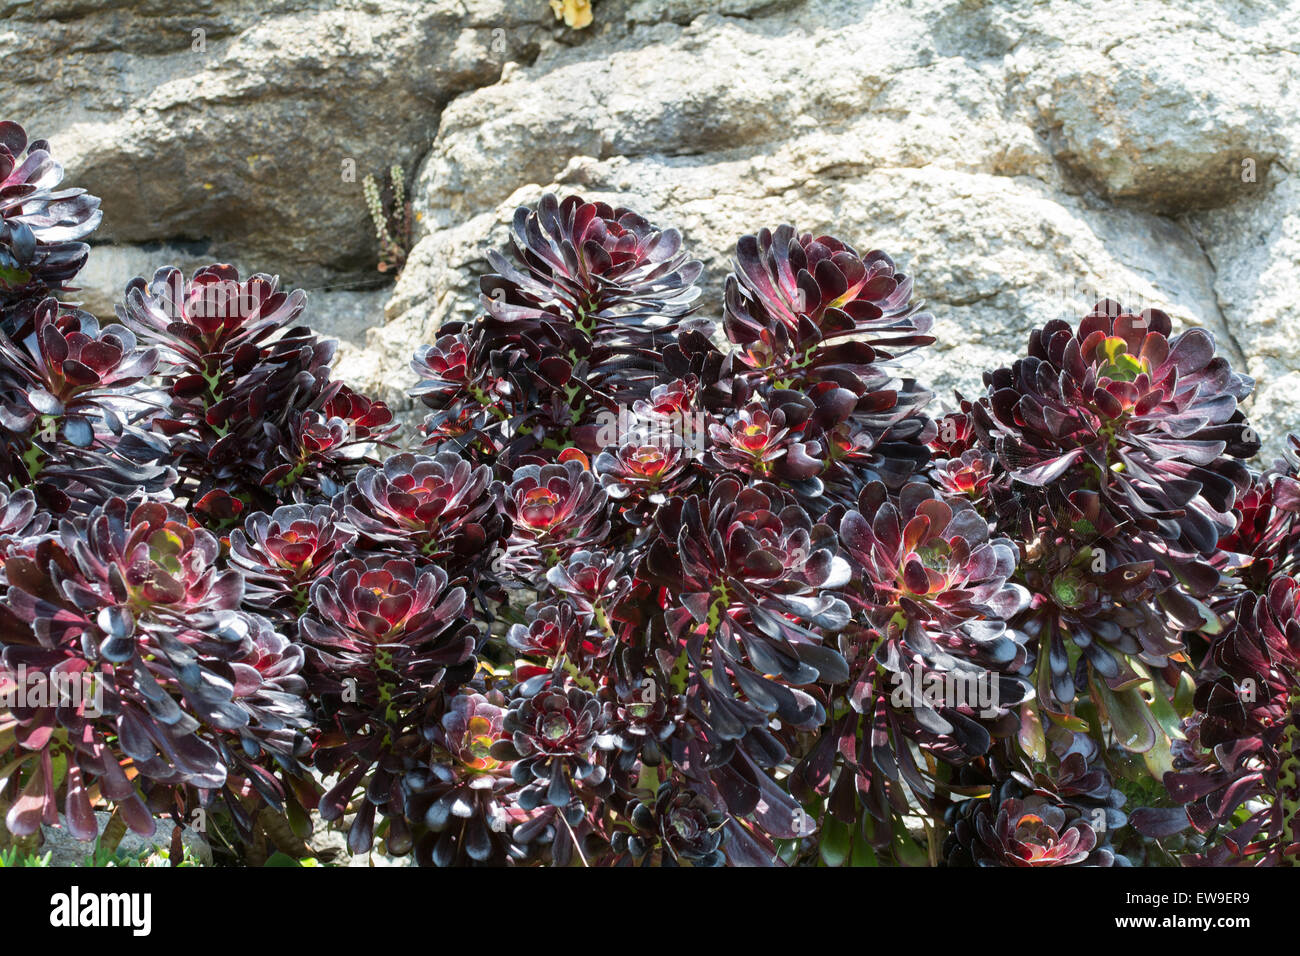 Violet foncé aeoniums contre un rocher blanc Photo Stock